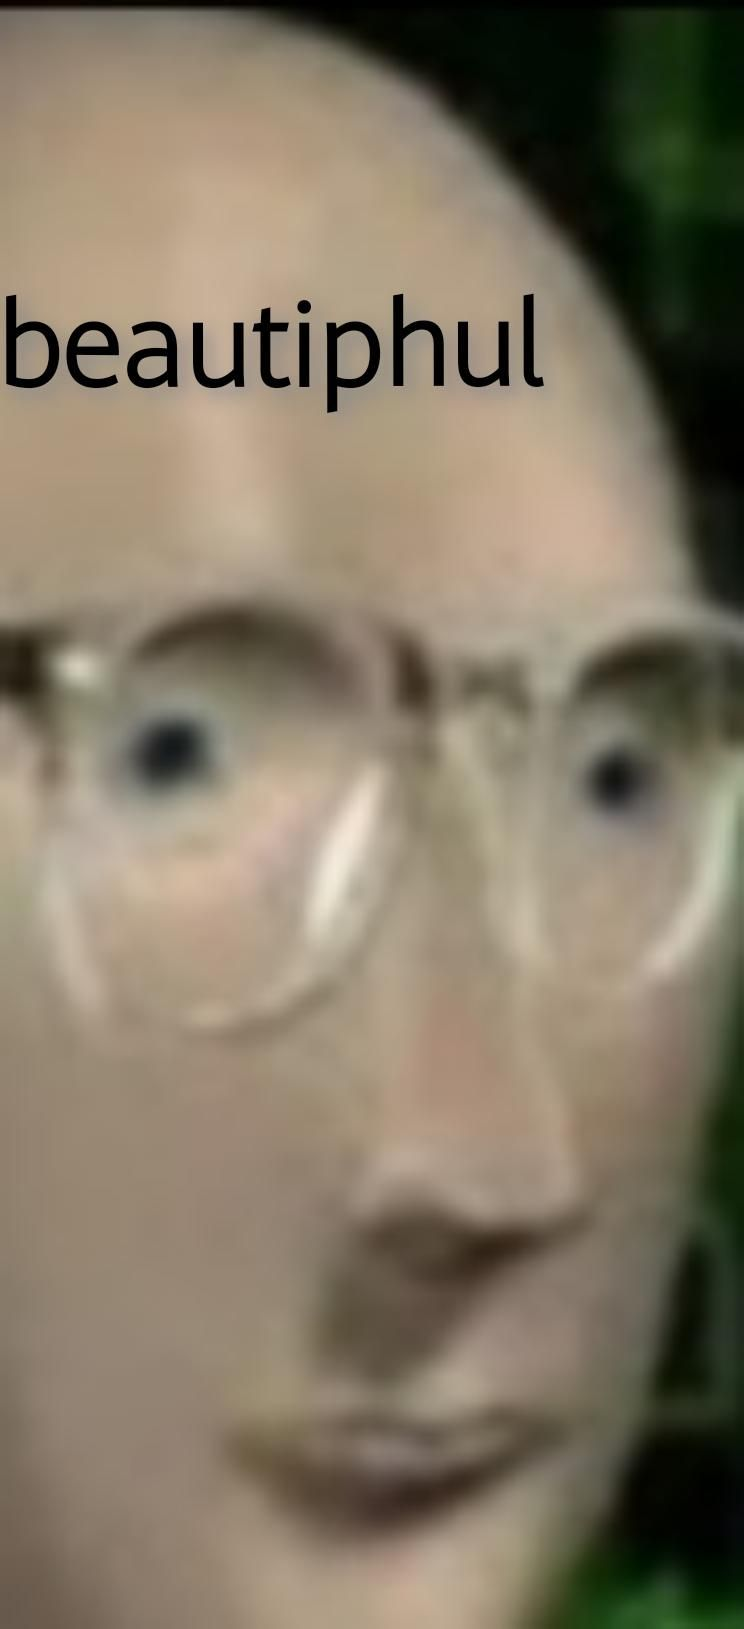 When You See A Meme And You Have To Zoom In To Experience All Of The Glory Really Funny Memes Stupid Memes Stupid Funny Memes